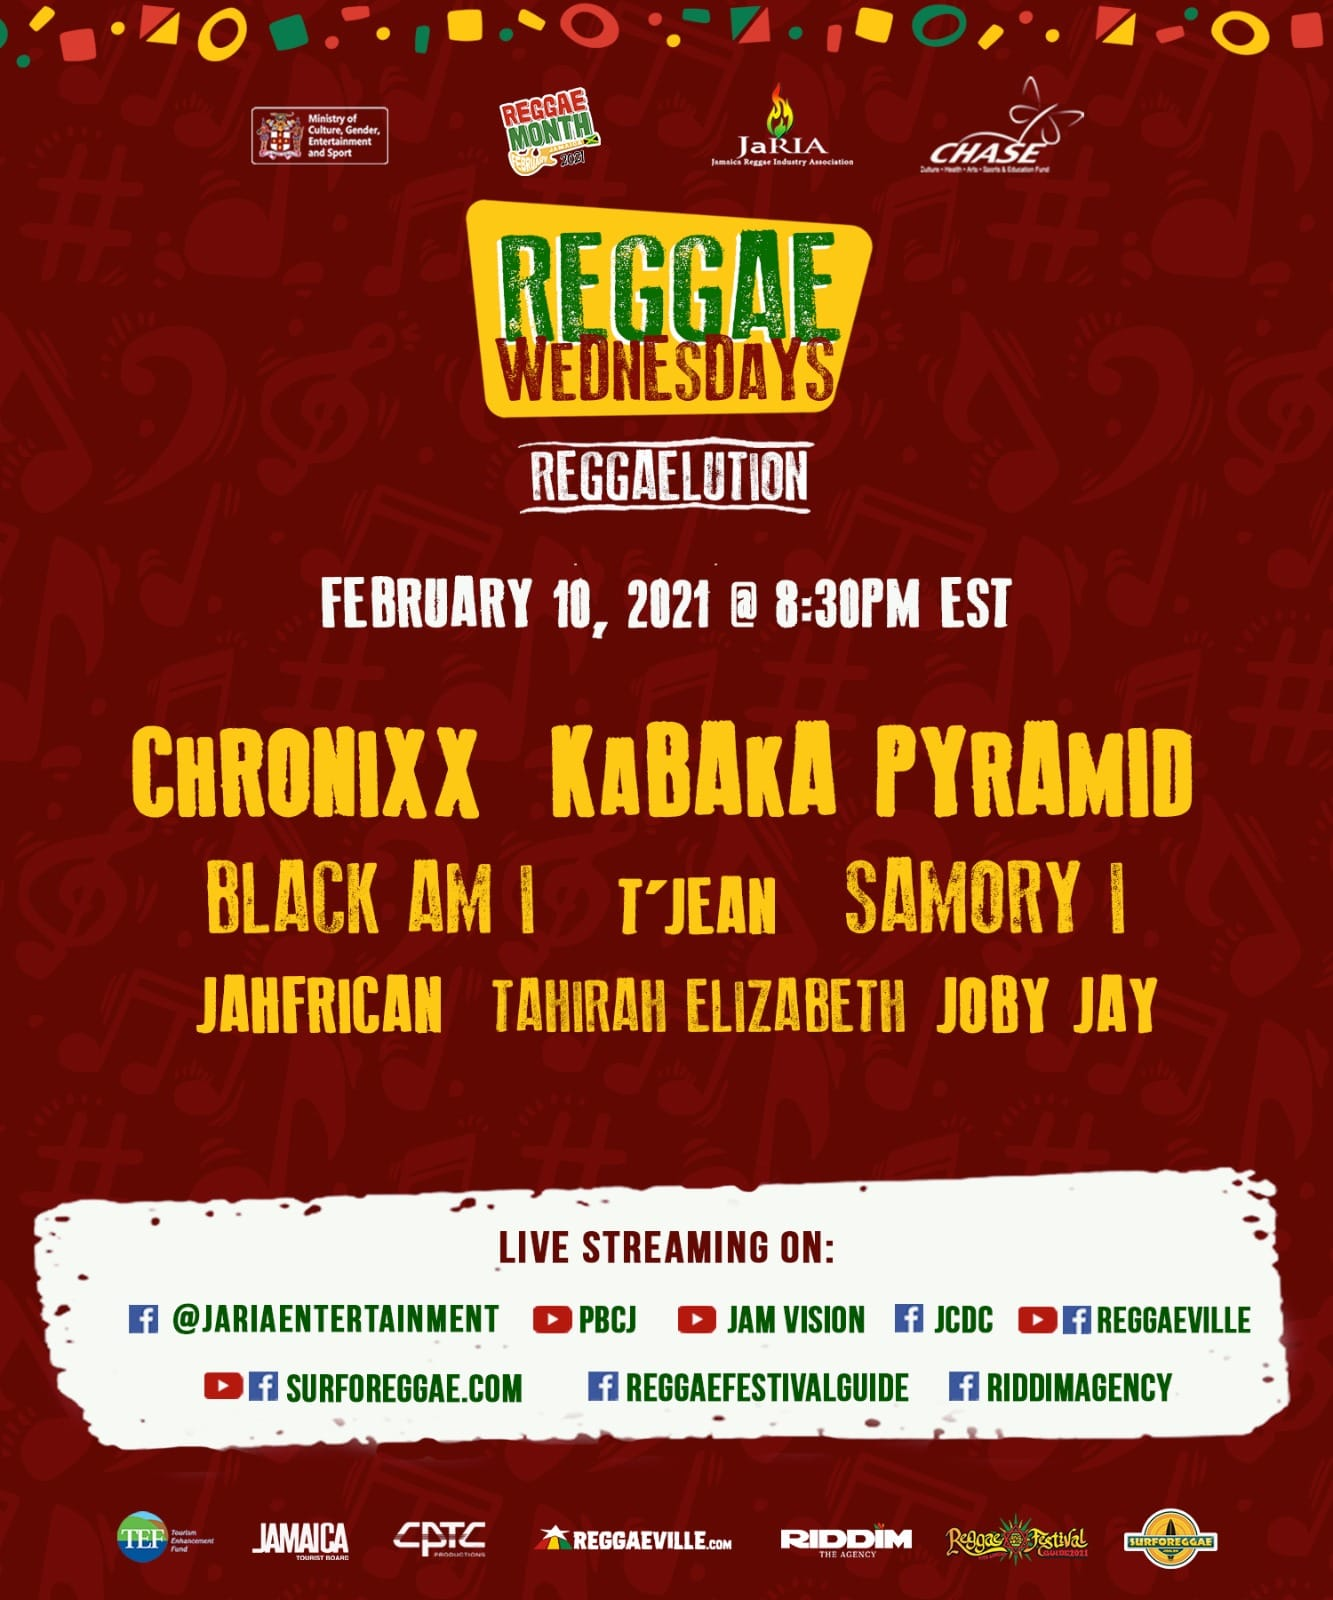 Reggaelution 2021 -Chronixx, Kabaka Pyramid & Samory I